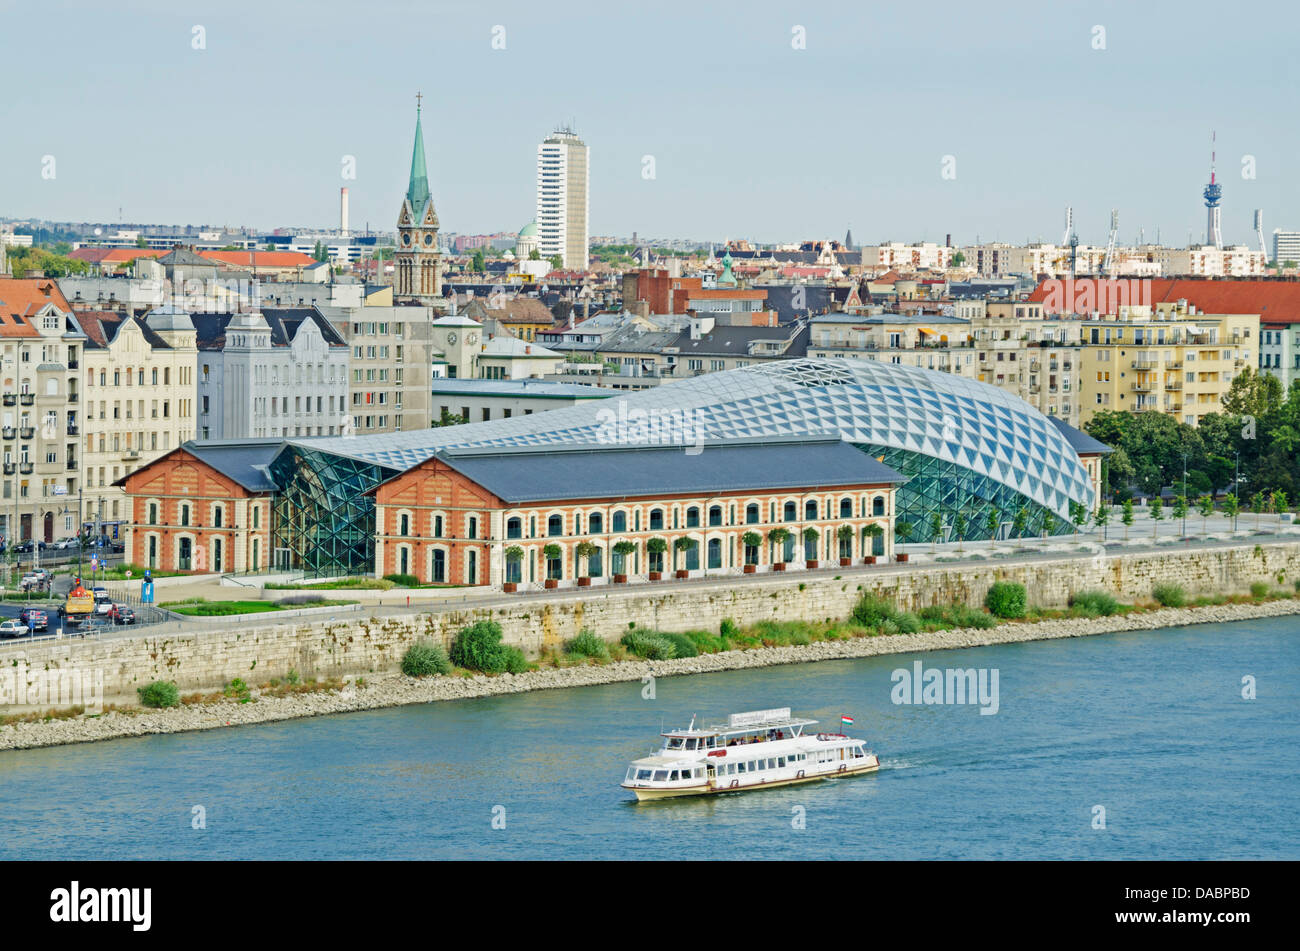 CET, Central European Time Building, Budapest, Hungary, Europe - Stock Image